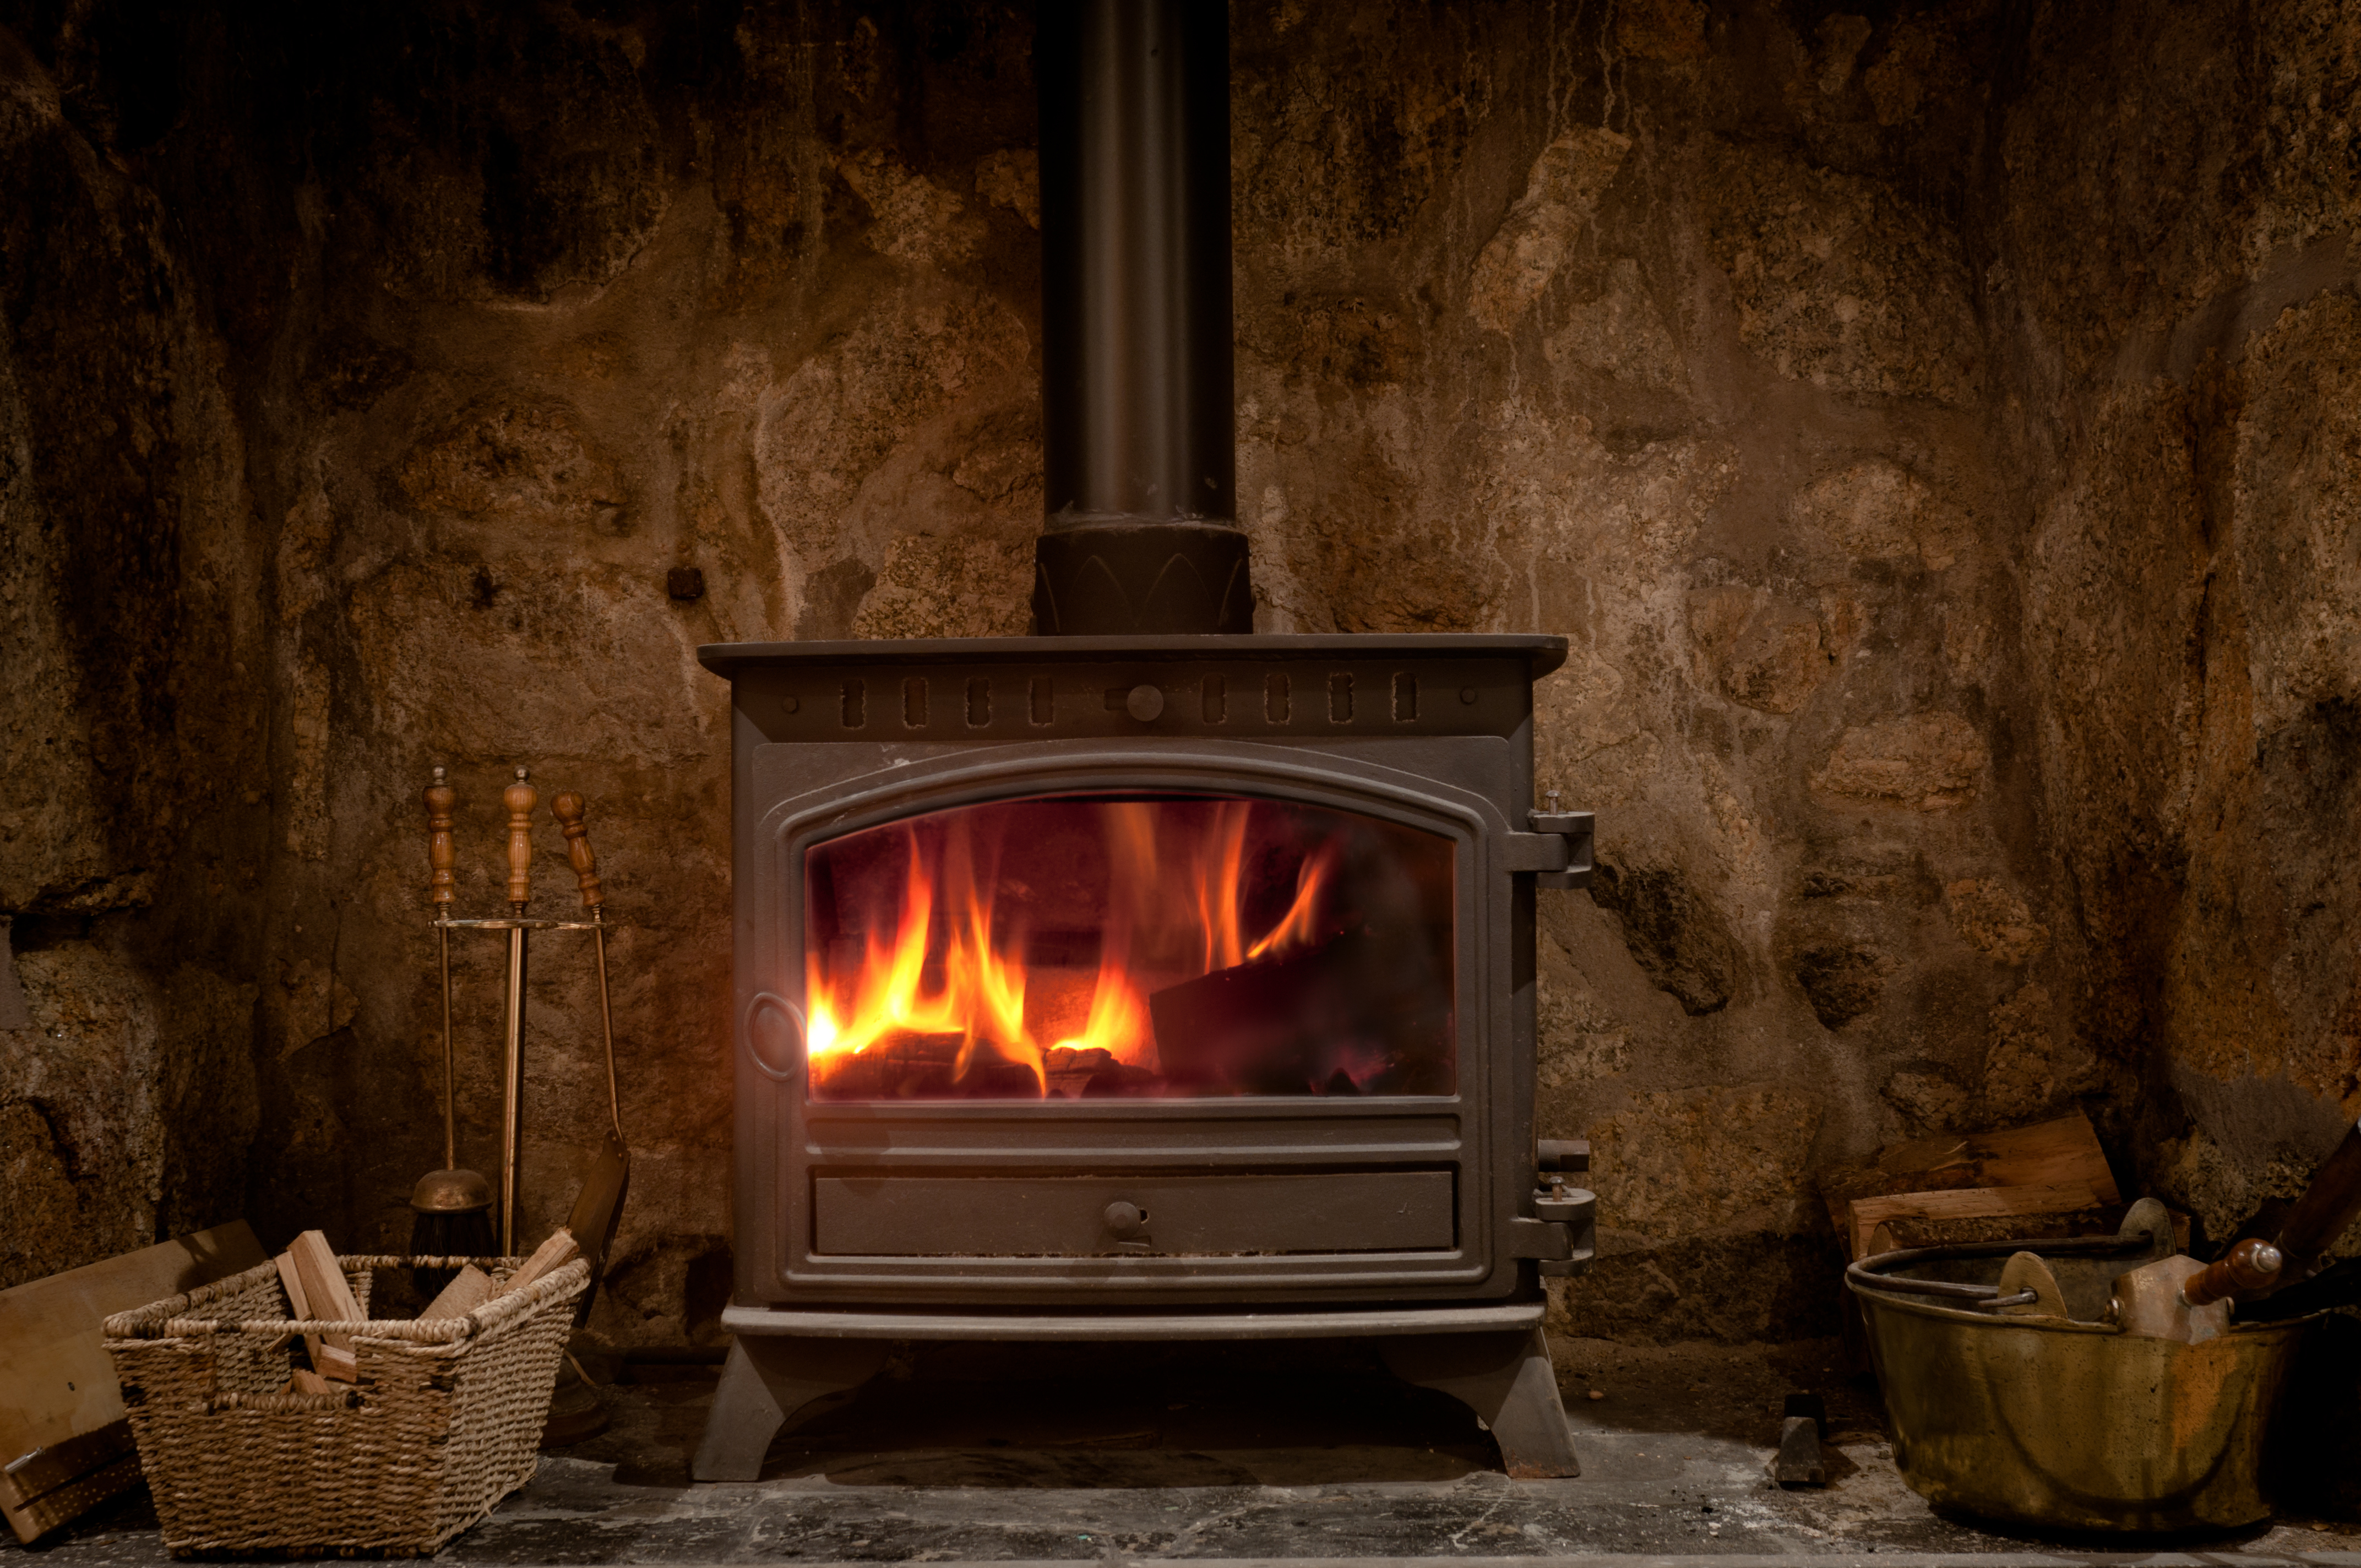 How To Control The Air In A Wood Burning Stove Home Guides Sf Gate